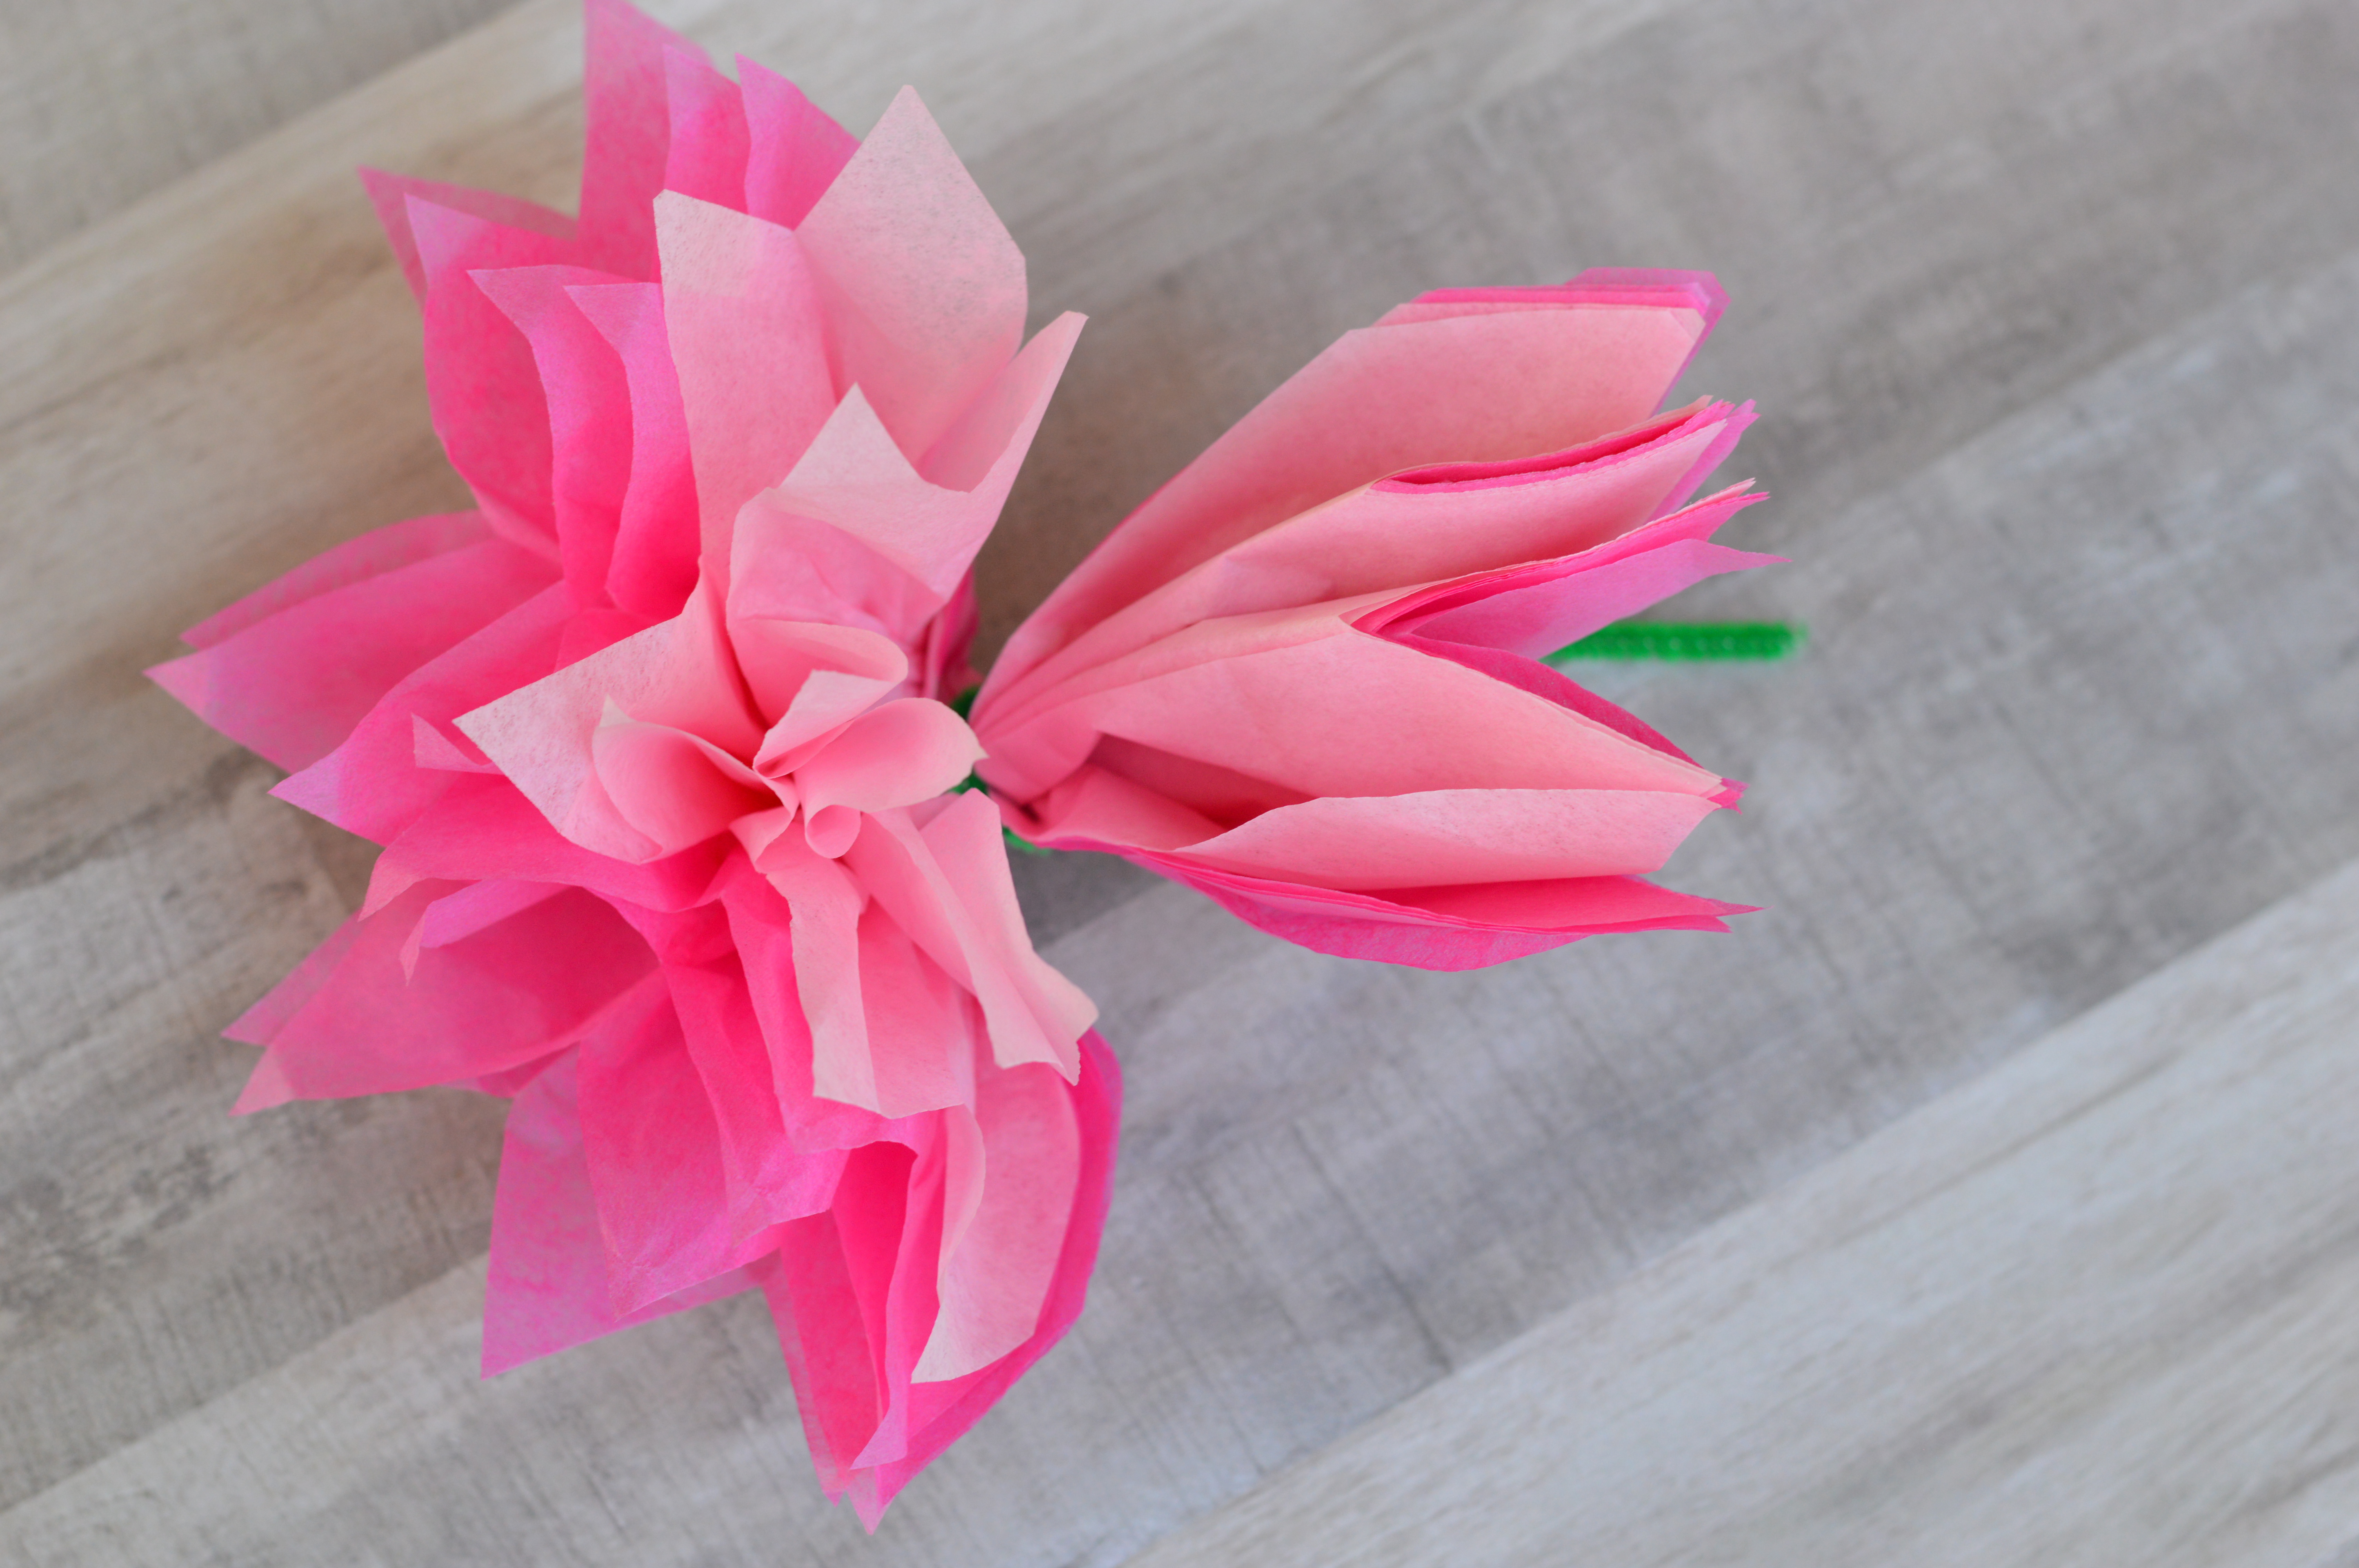 Tissue Paper Flowers for Mother's Day - My Big Fat Happy Life